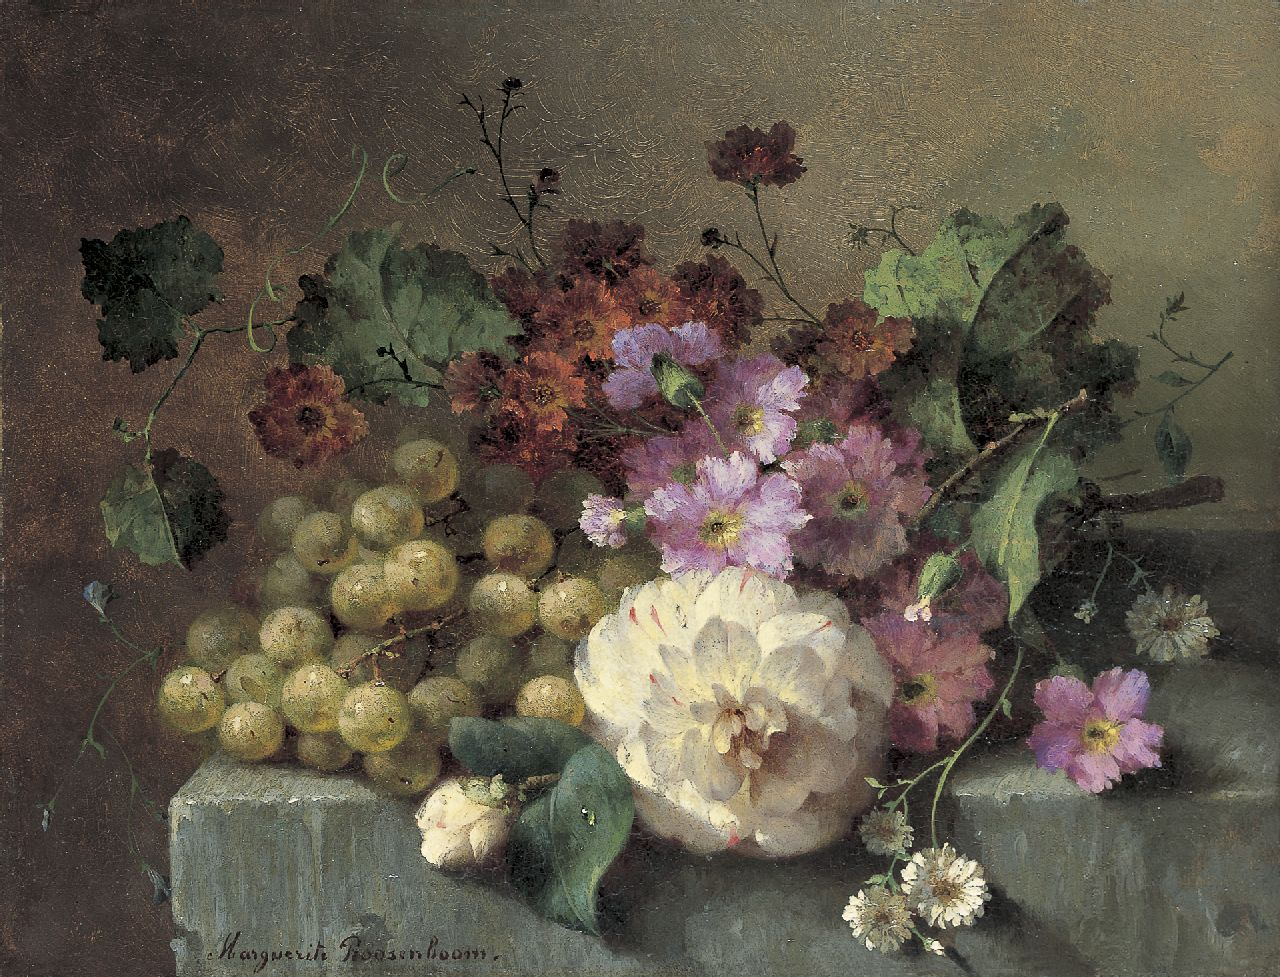 Roosenboom M.C.J.W.H.  | 'Margaretha' Cornelia Johanna Wilhelmina Henriëtta Roosenboom, Flowers and grapes on a stone ledge, oil on panel 26.0 x 33.9 cm, signed l.l.